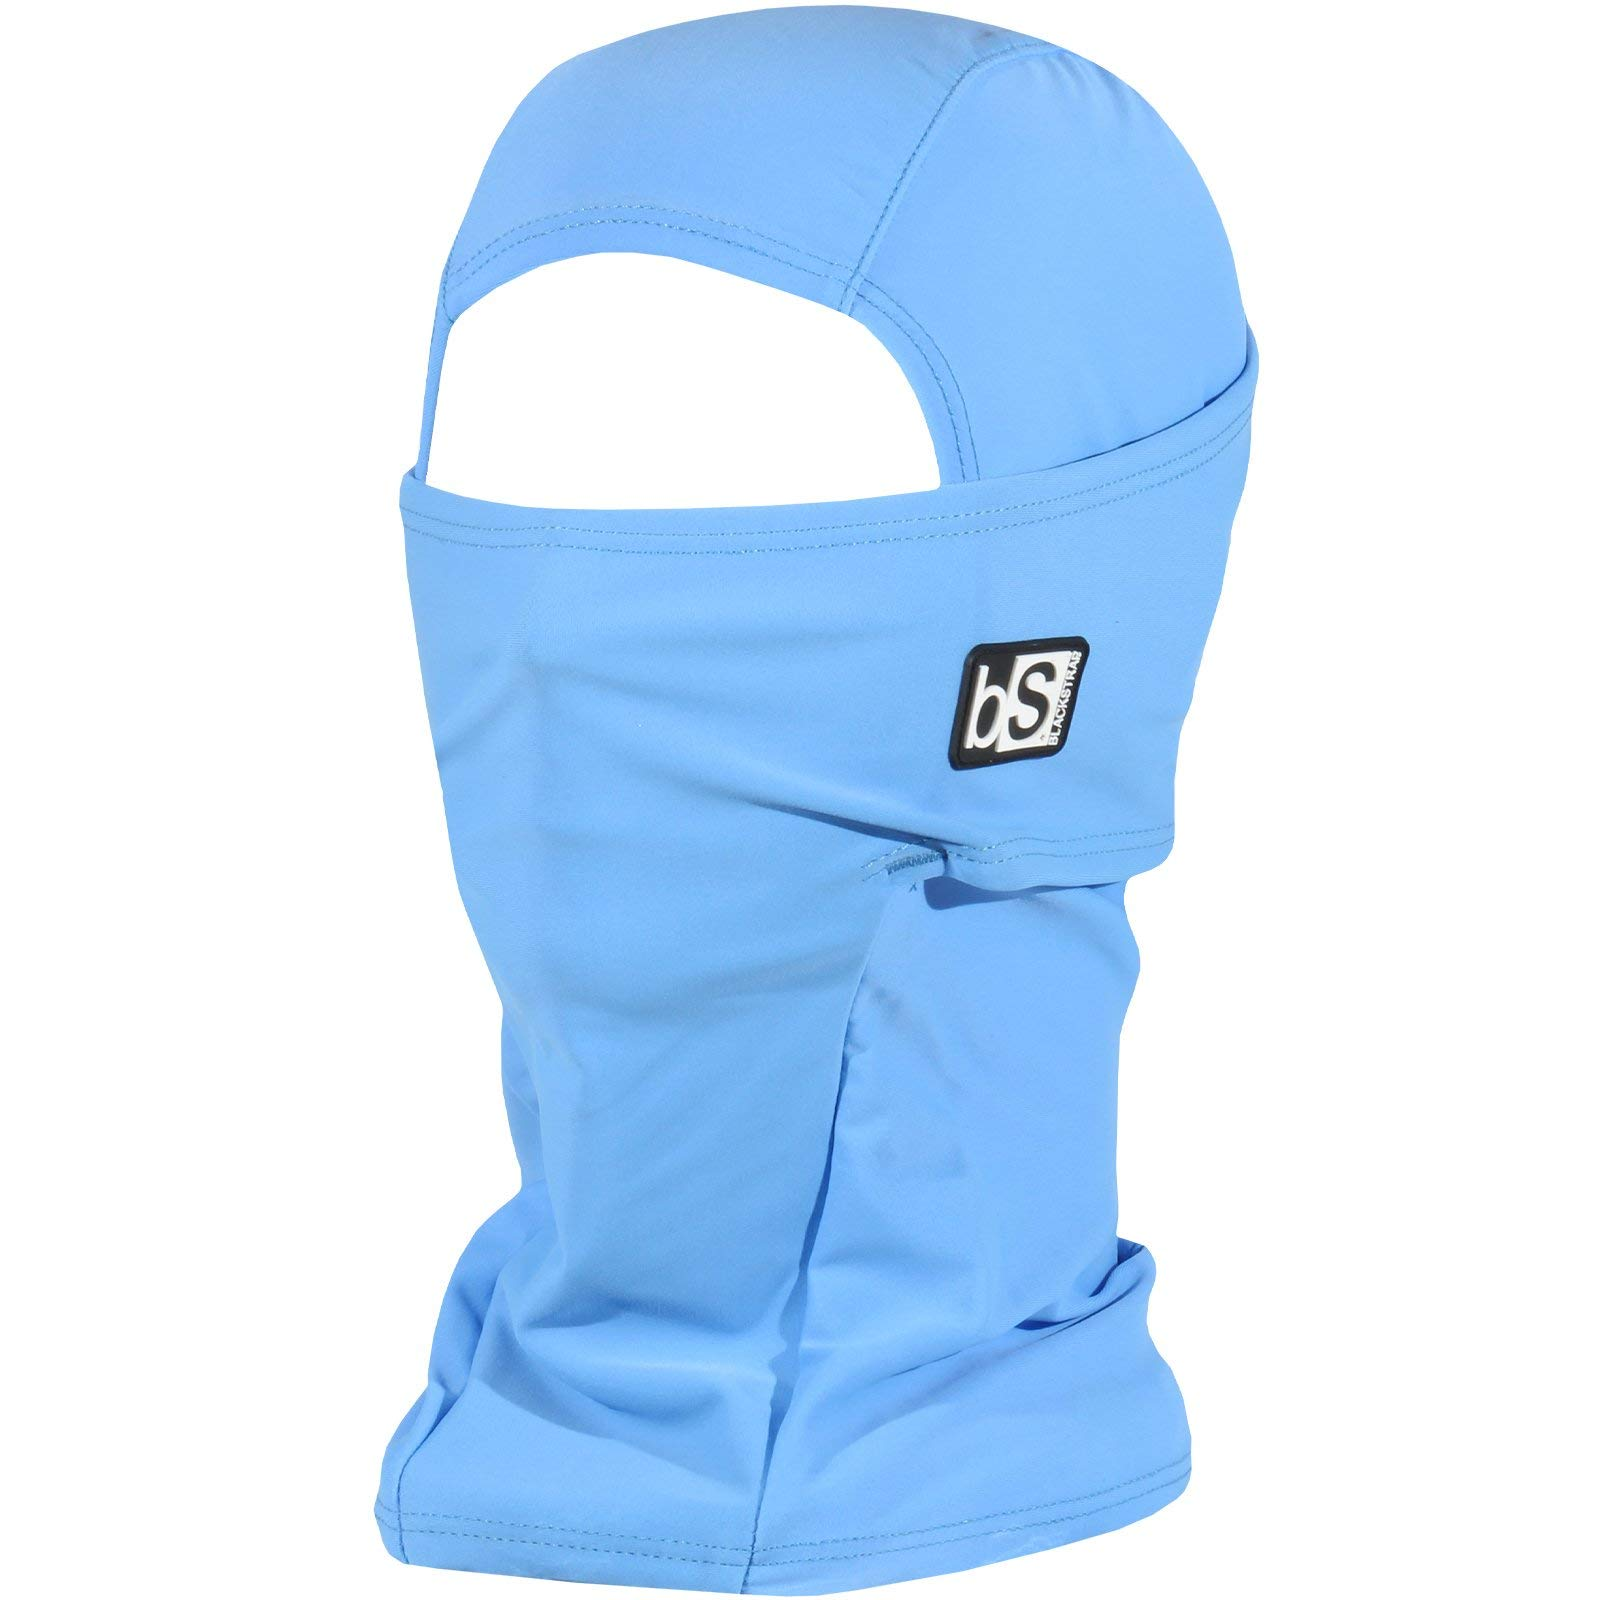 BLACKSTRAP Hood Balaclava Face Mask, Dual Layer Cold Weather Headwear for Men and Women